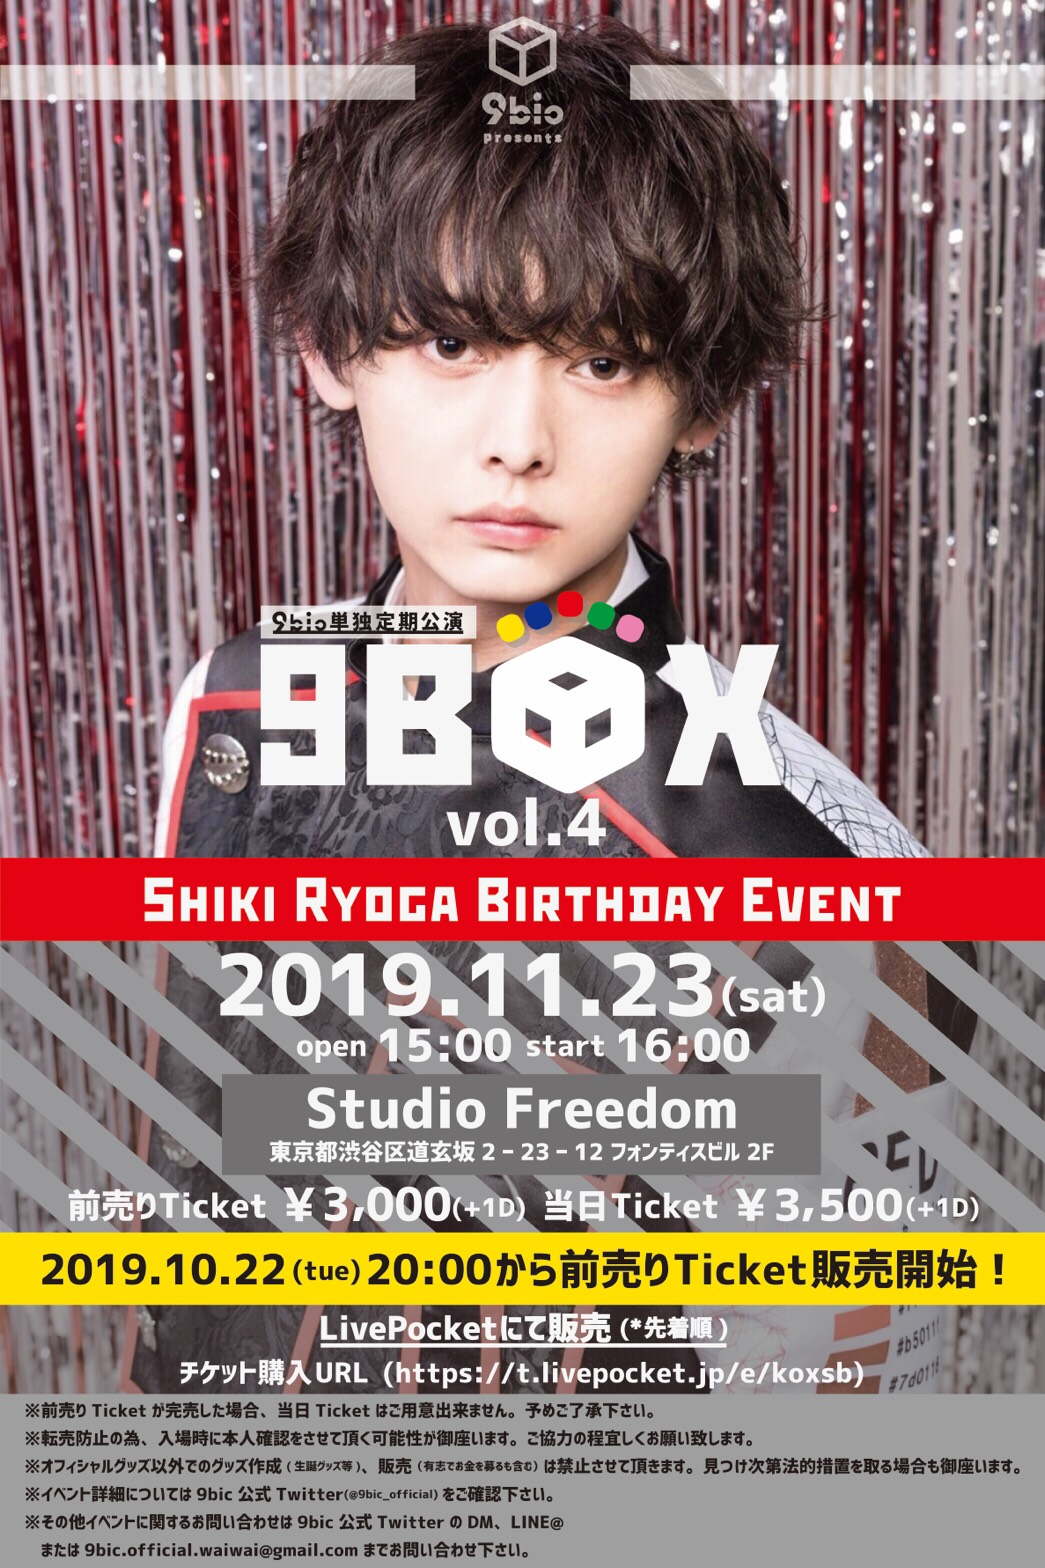 9box vol.4 ~Shiki Ryoga Birthday Event~